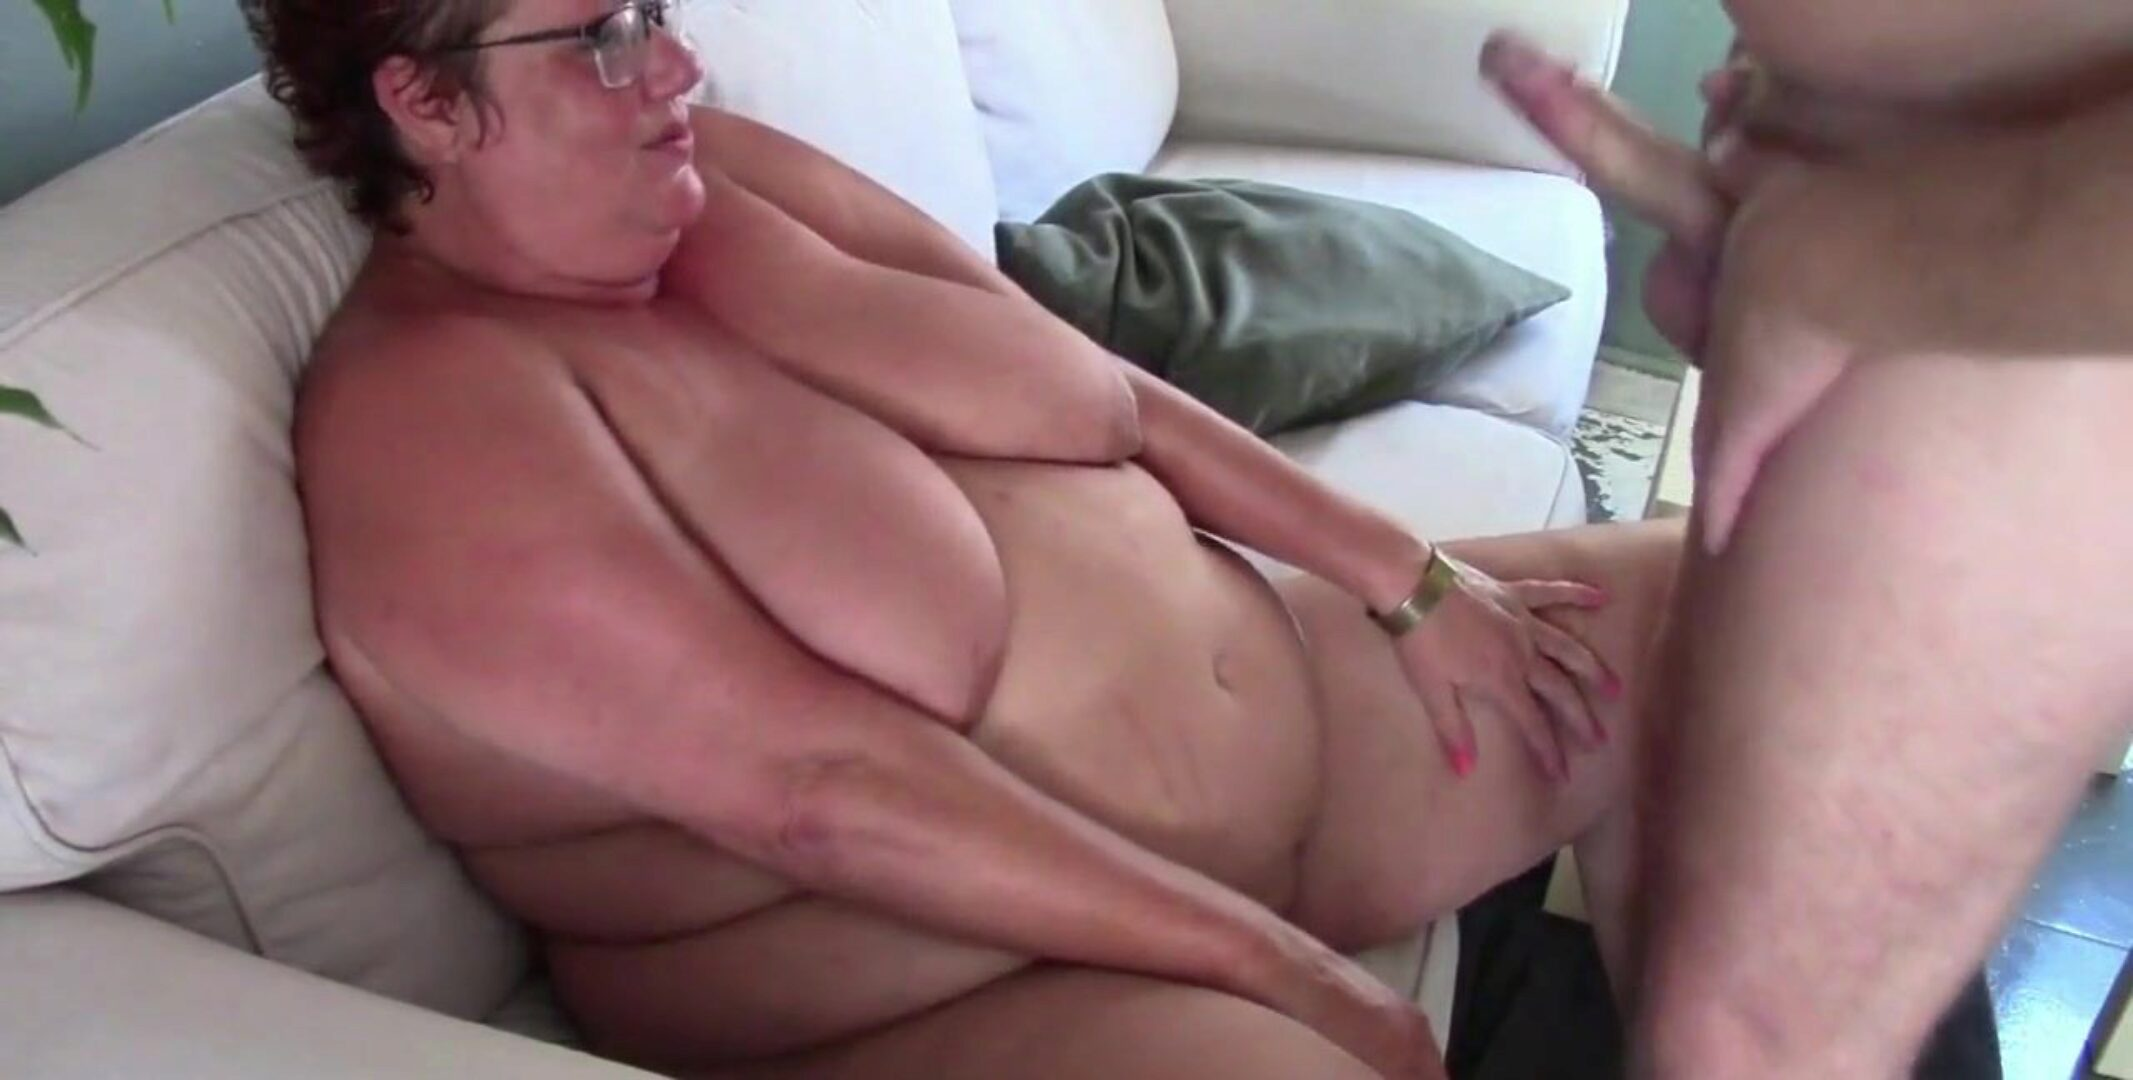 50yo Mature Granny Wife Fucked with Cumshot on Her Belly Watch 50yo Mature Granny Wife Fucked with Cumshot on Her Belly clip on xHamster - the ultimate collection of free-for-all Granny Iphone & Granny List HD porno tube videos